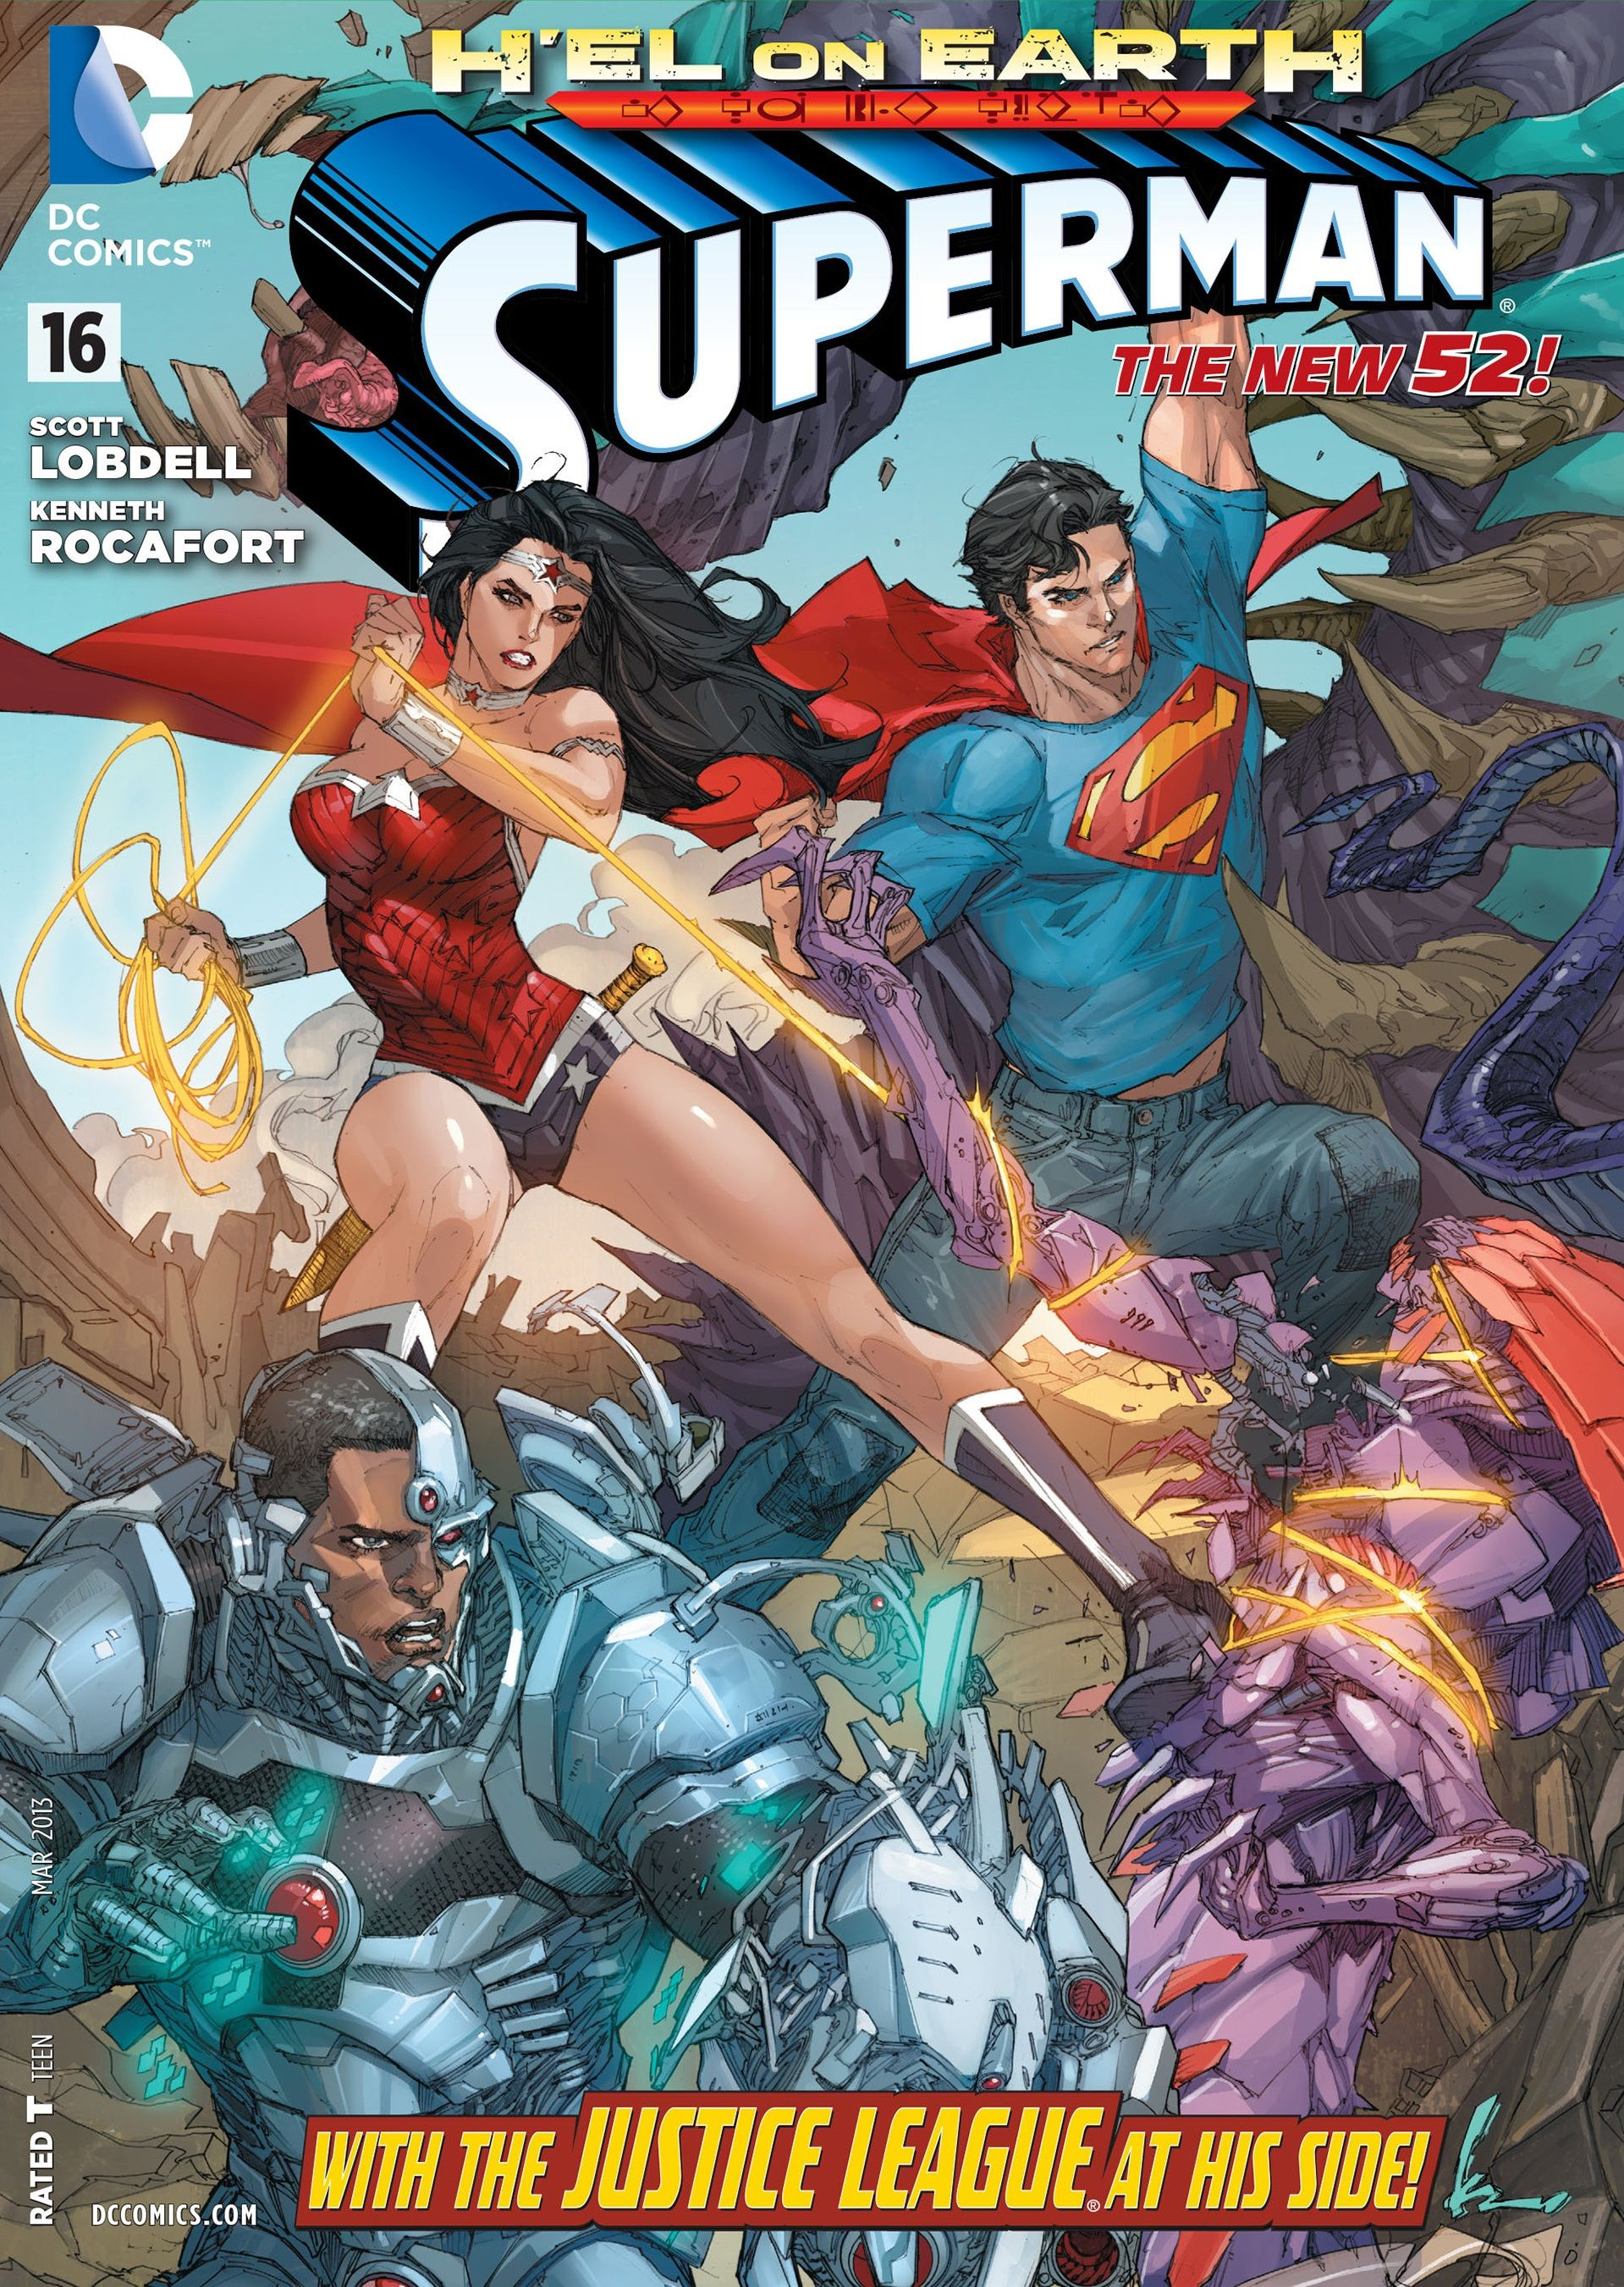 Superman Vol 3  16 - Cover Art By Kenneth Rocafort -5860